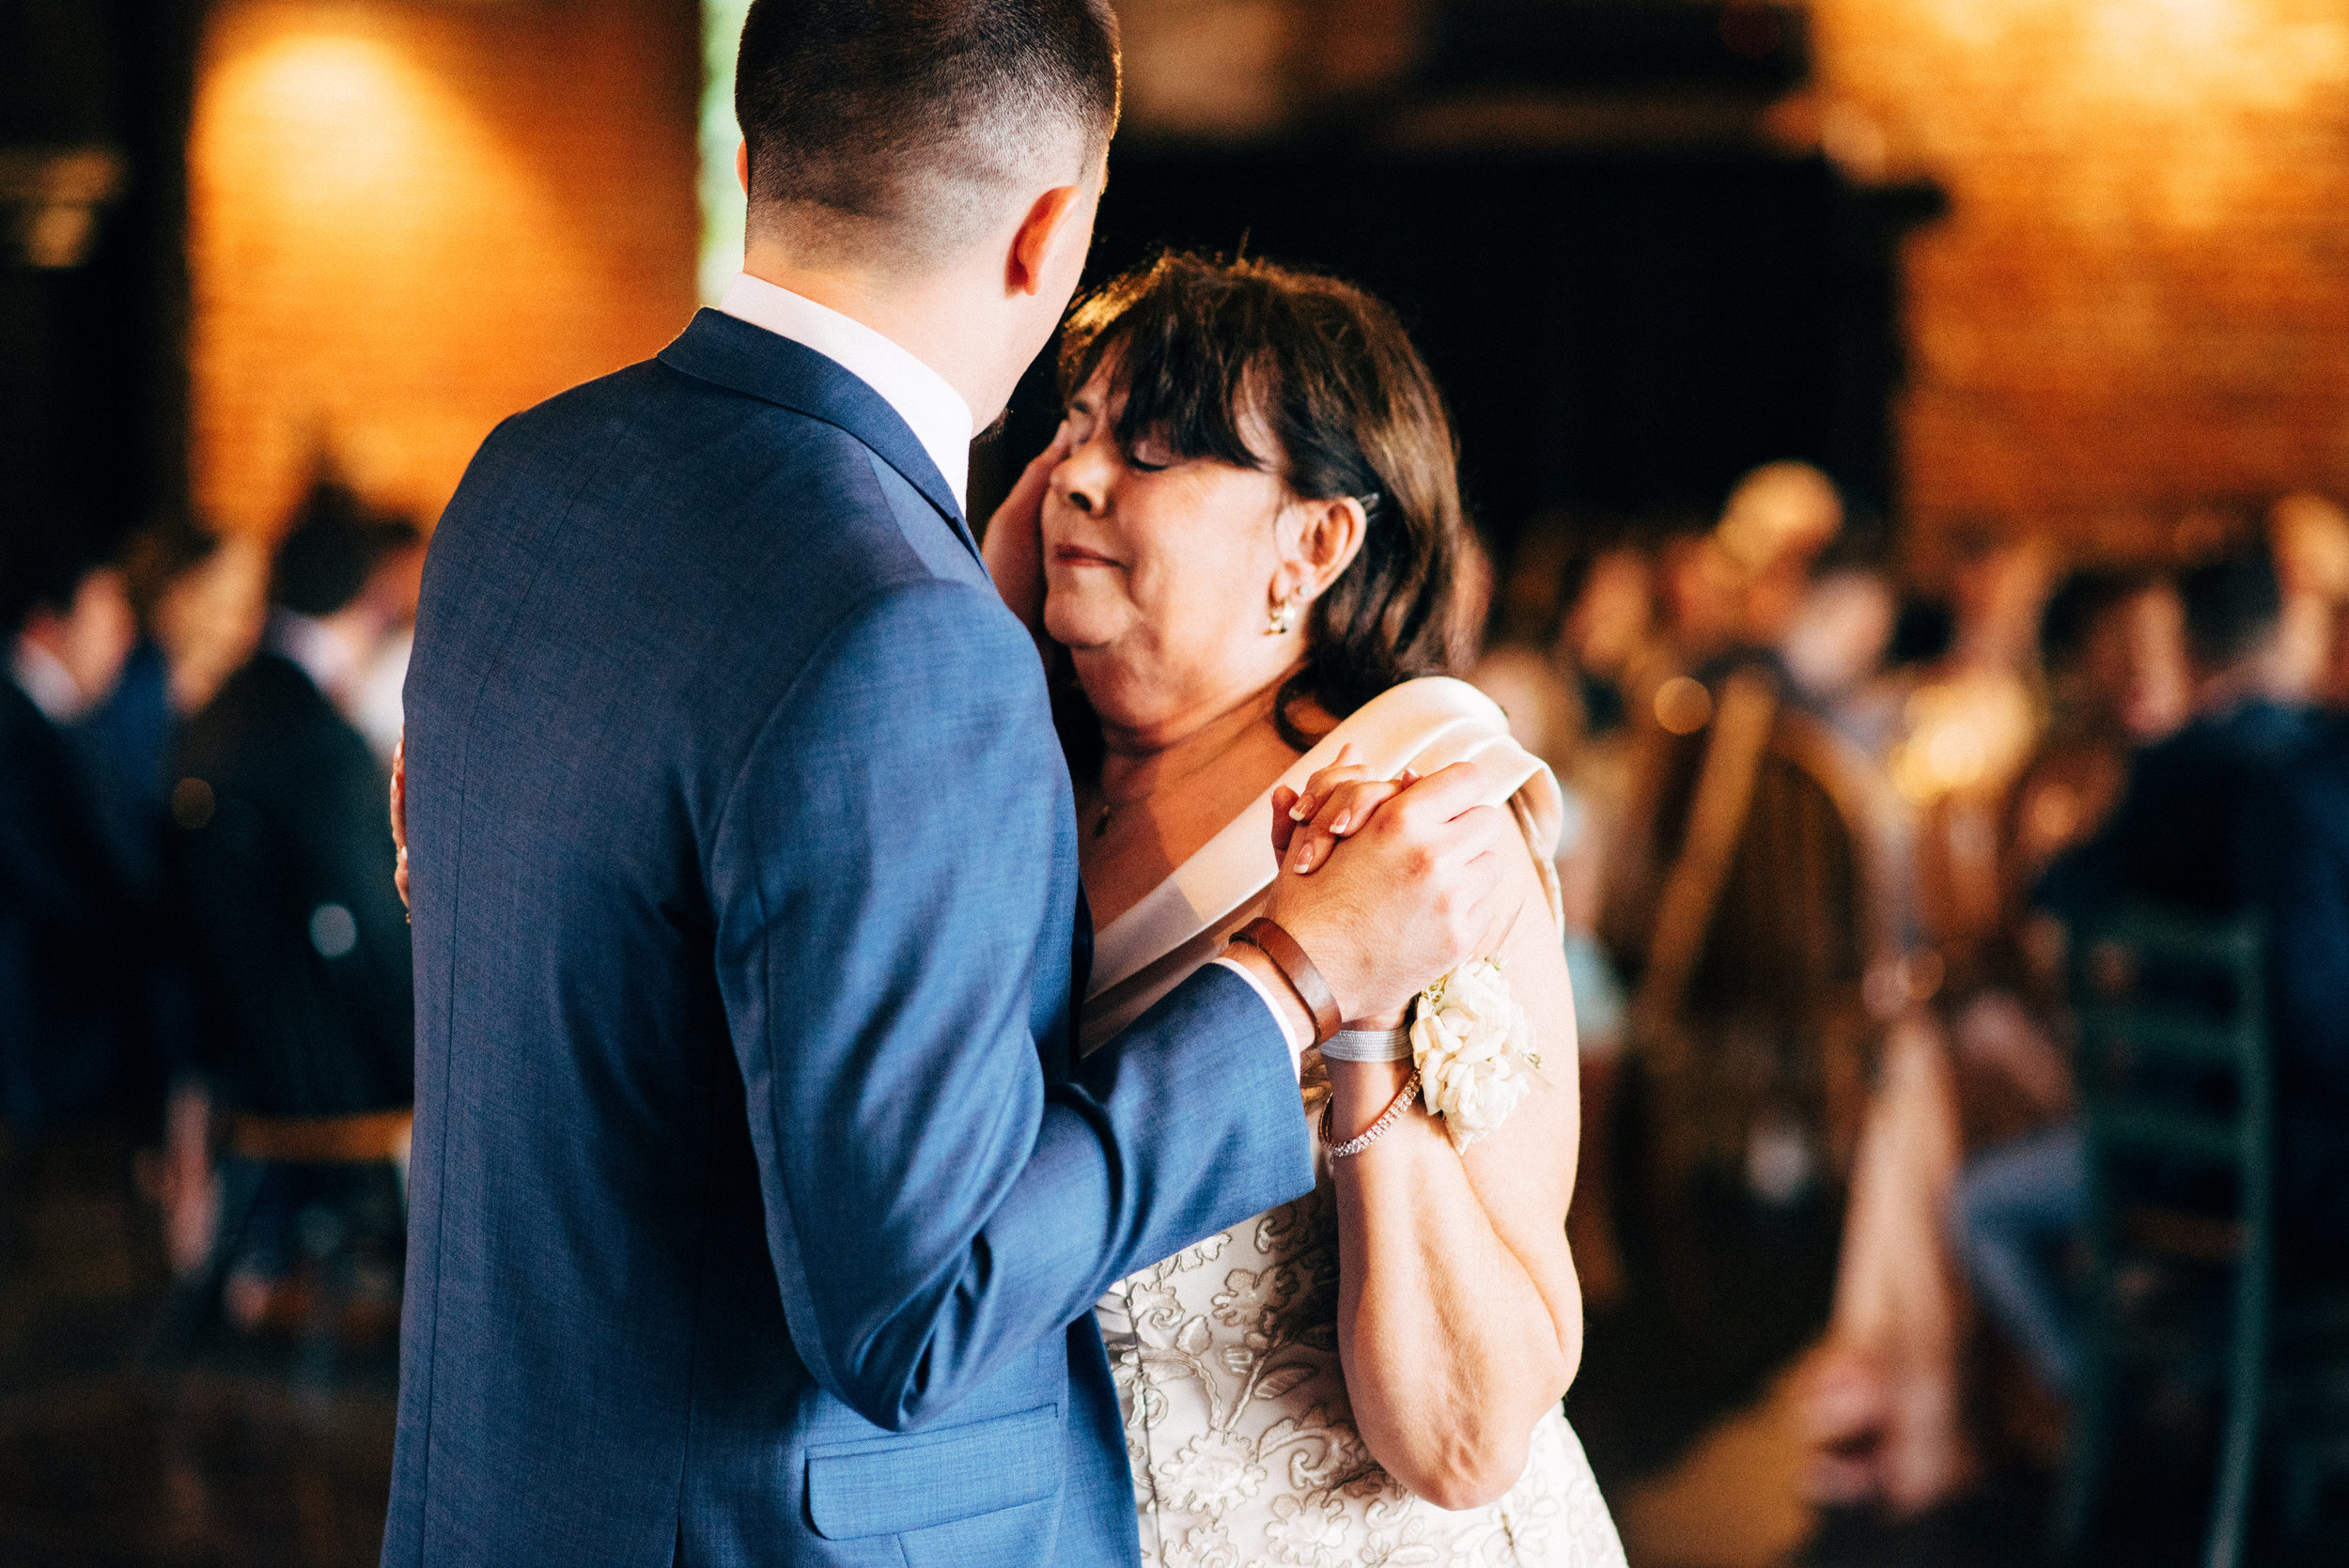 son wipes mother's tears as they dance during the wedding reception at the Inn at the Old Silk Mill